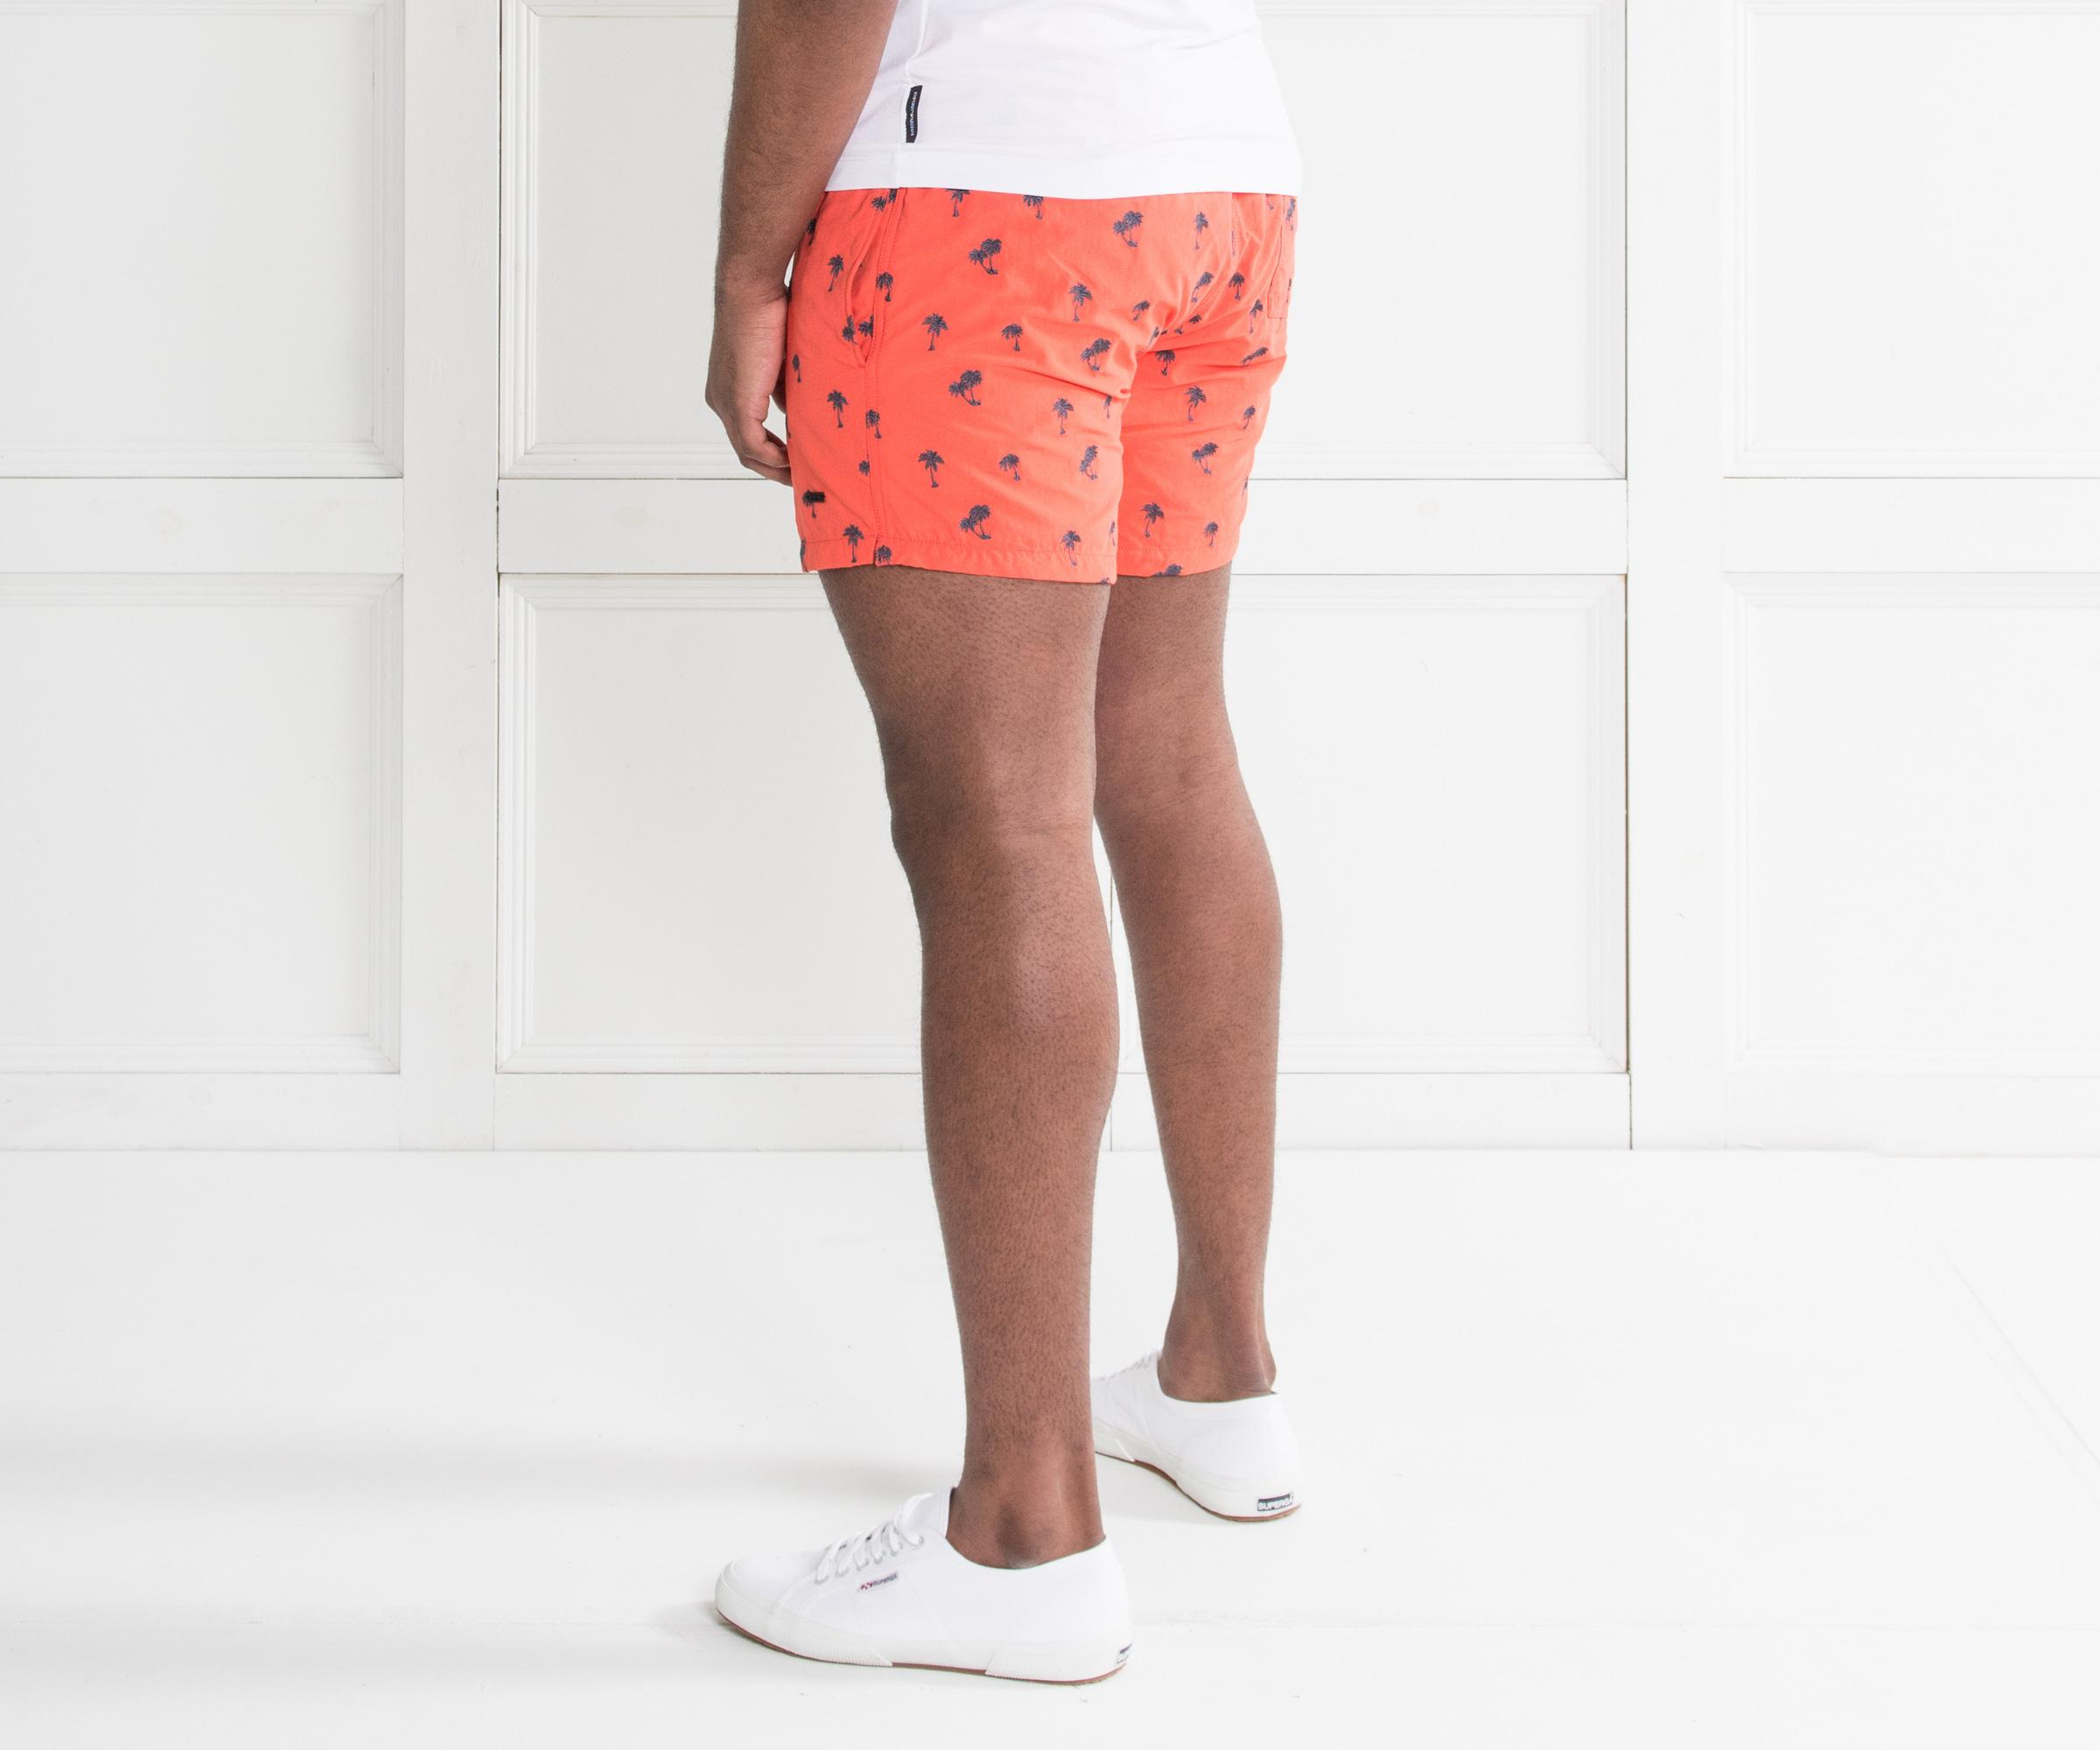 RDHOPE-Men Half Pants Athletic Relaxed-Fit Fit Premium Board Shorts